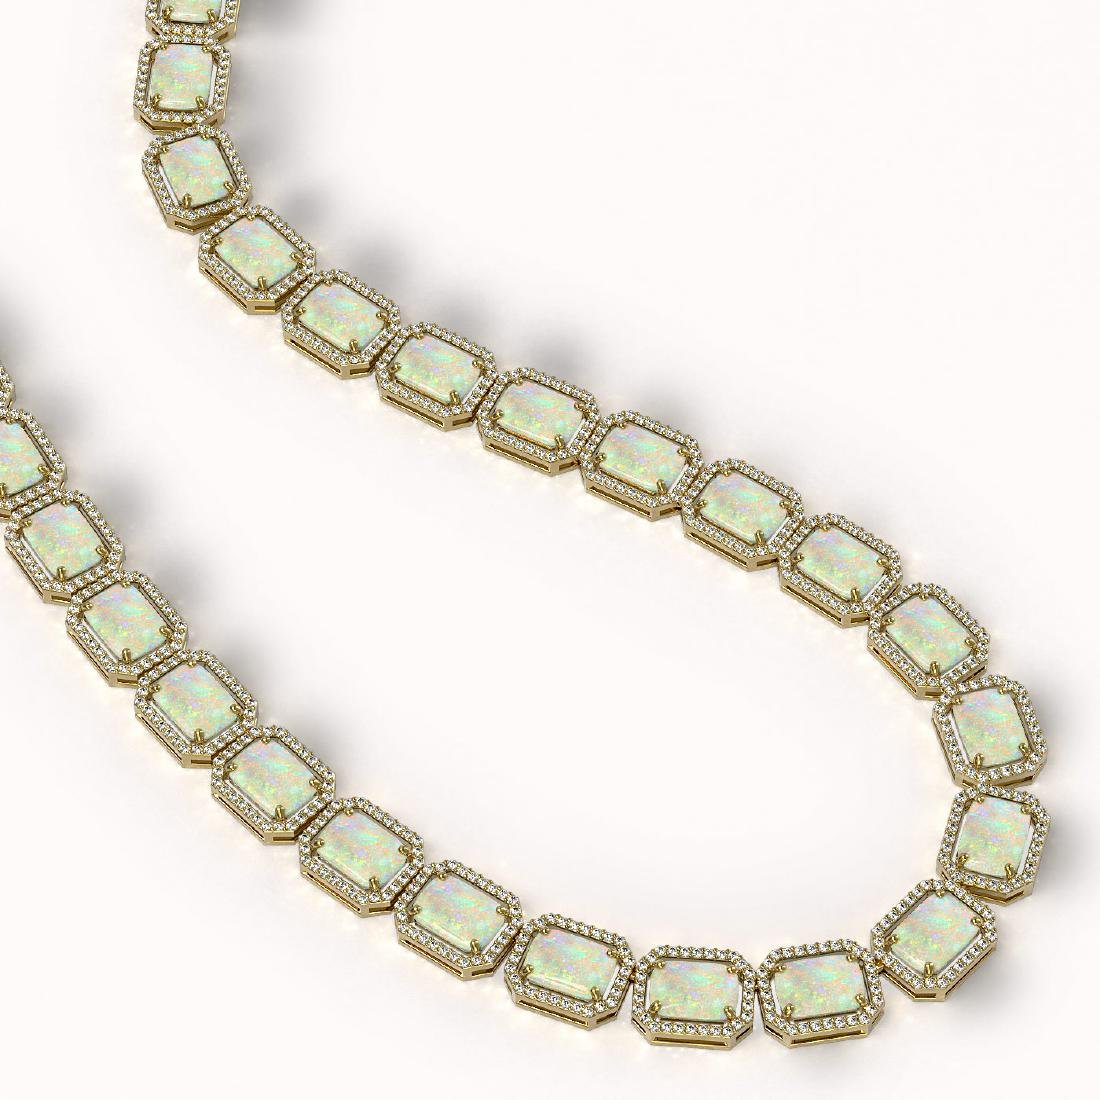 53.59 CTW Opal & Diamond Halo Necklace 10K Yellow Gold - 2